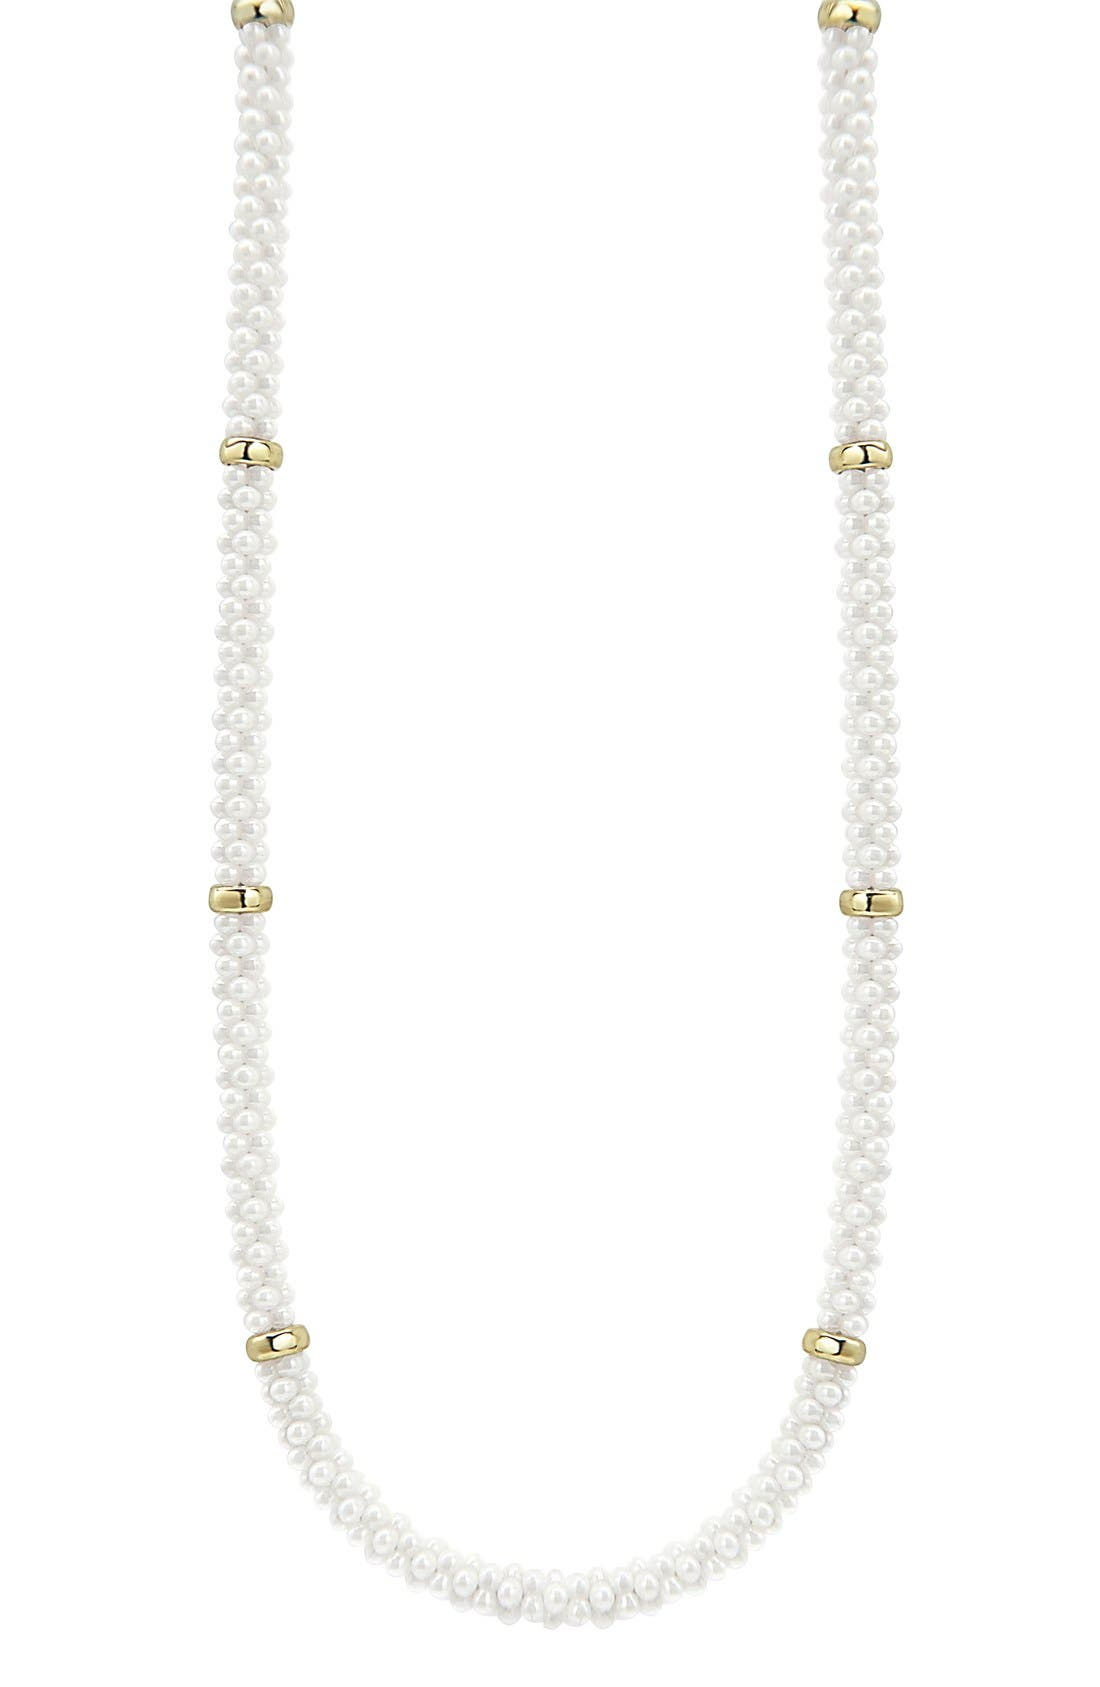 'White Caviar' 5mm Beaded Station Necklace,                             Alternate thumbnail 3, color,                             WHITE CAVIAR